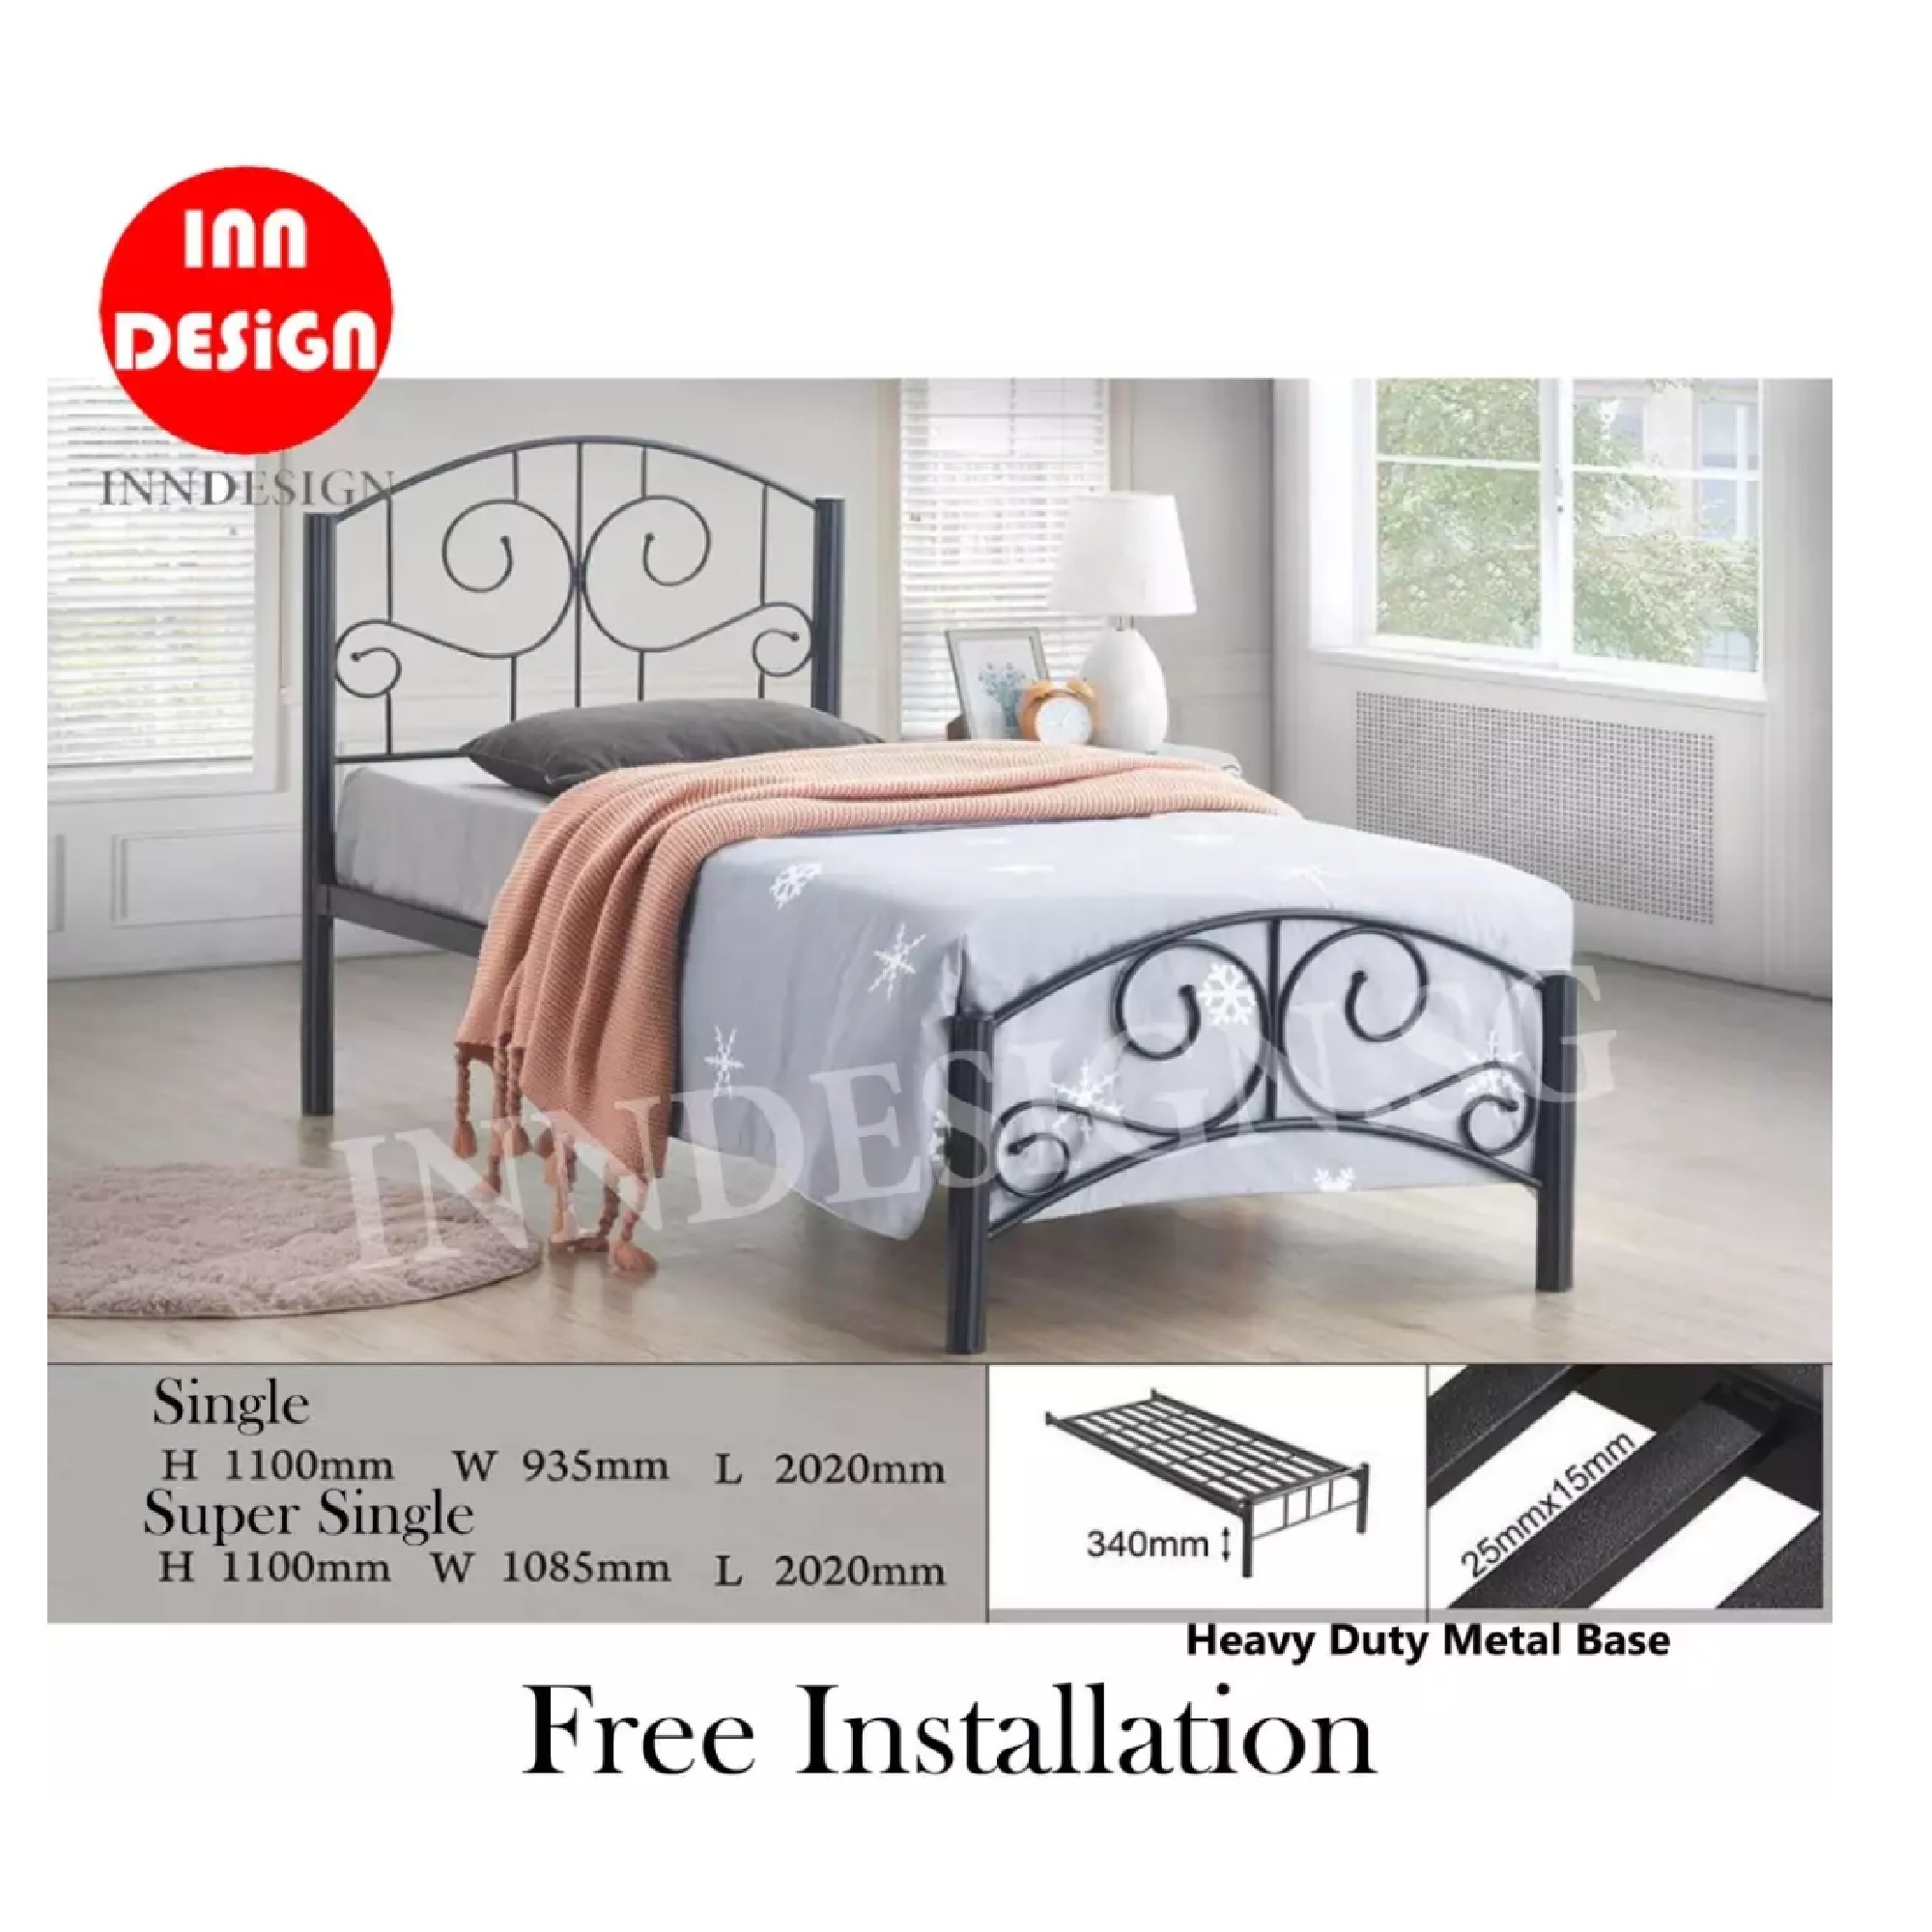 Emi III Single Heavy Duty Metal Bedframe / Bed (Free Delivery and Installation)